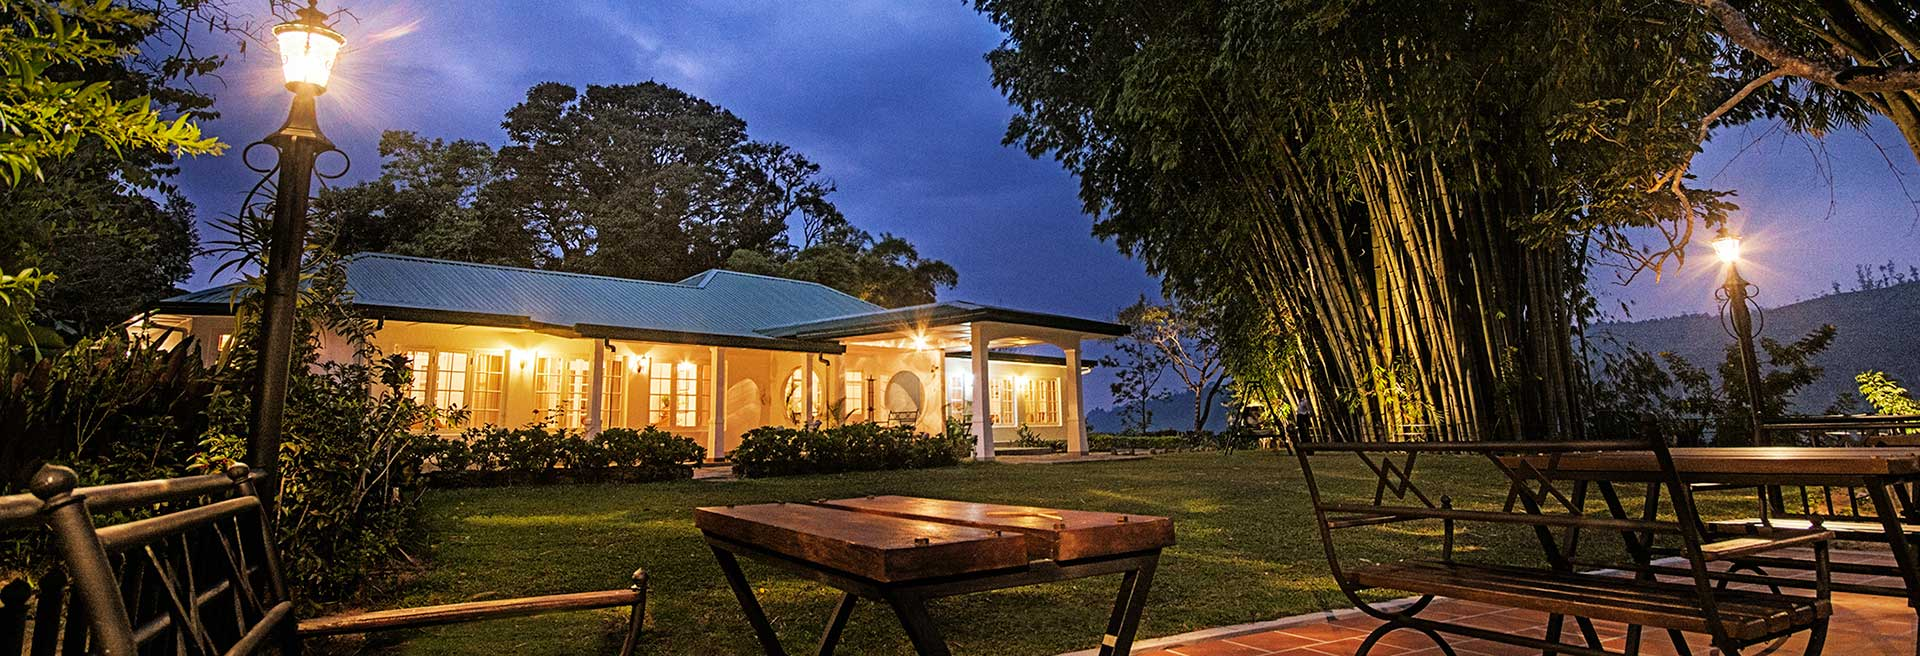 Outdoor dining under the trees at Strathdon by Jetwing